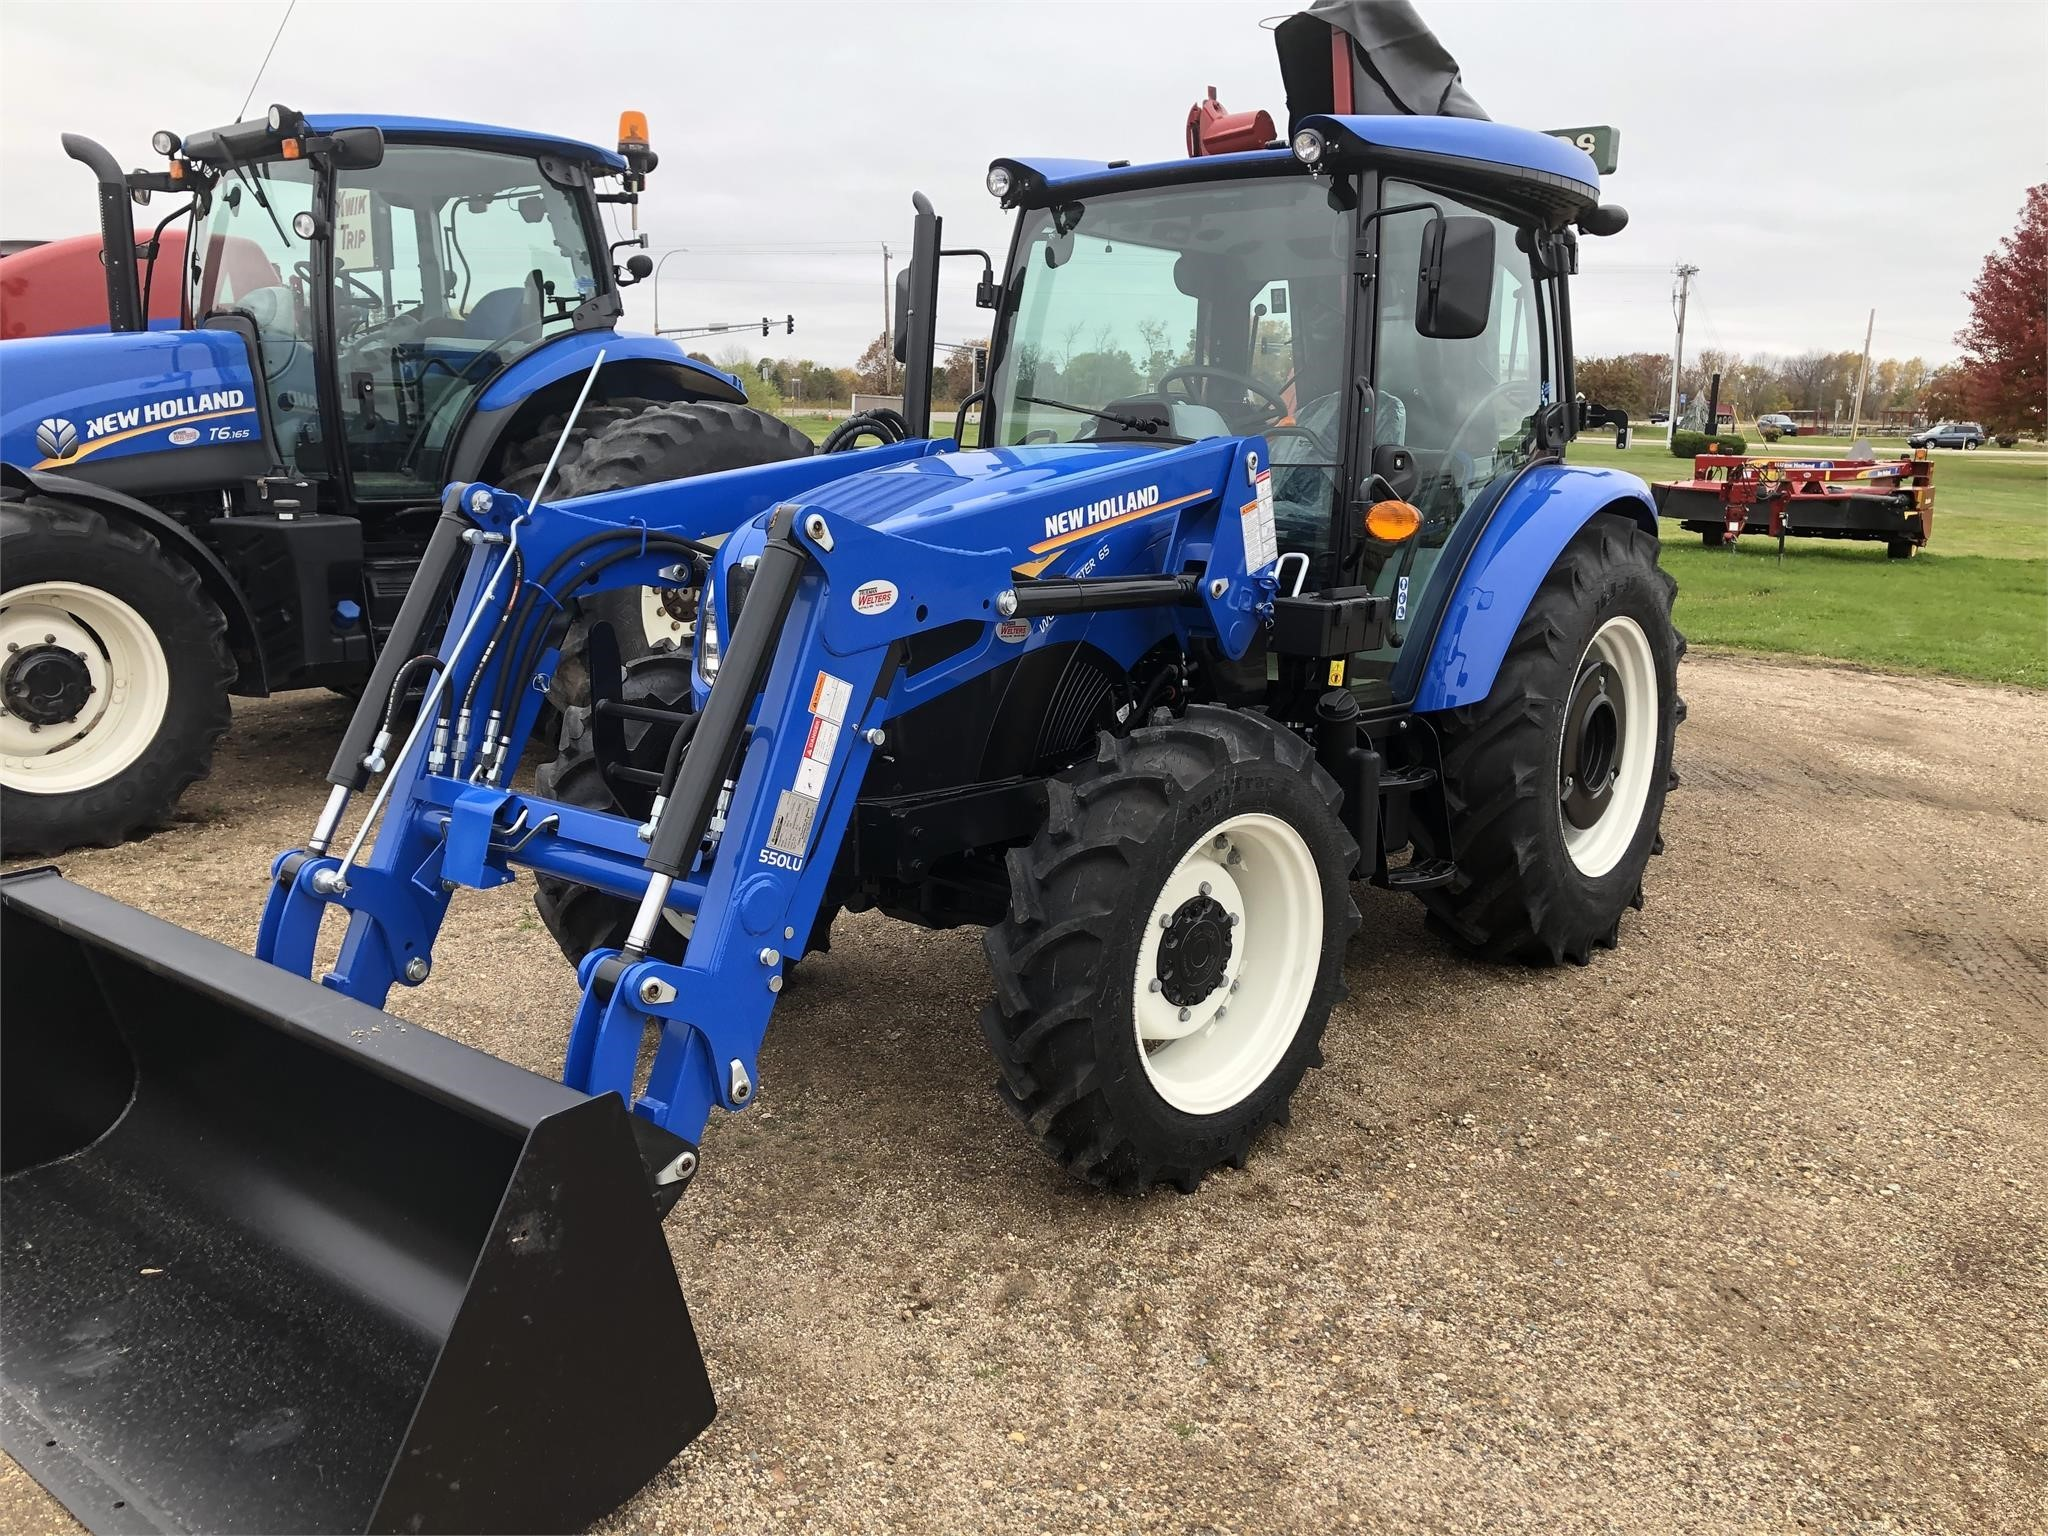 2019 New Holland Workmaster 65 Tractor